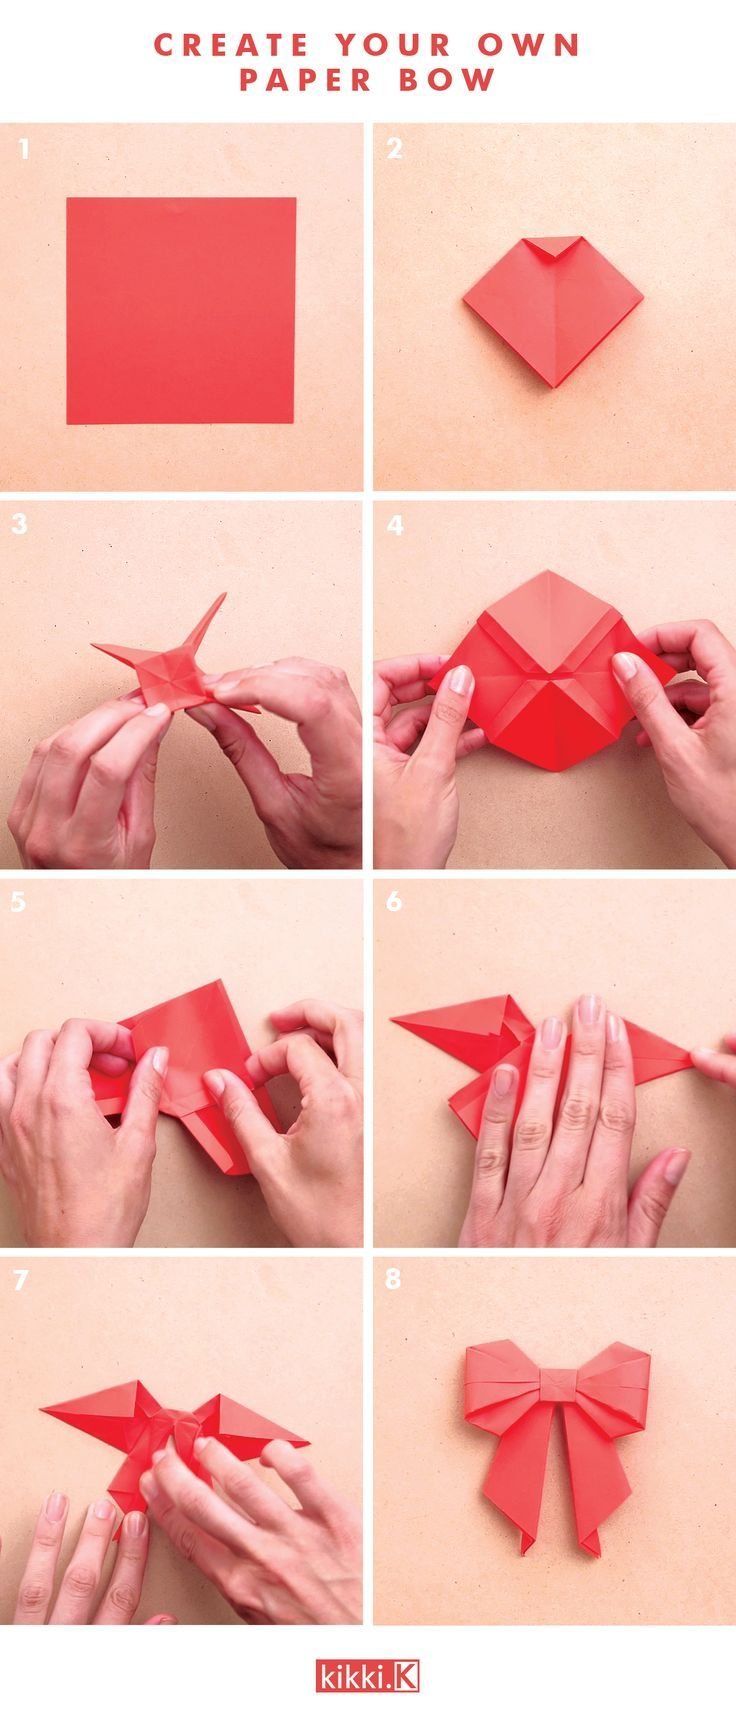 Decorate your gifts with this gorgeous DIY origami paper bow.